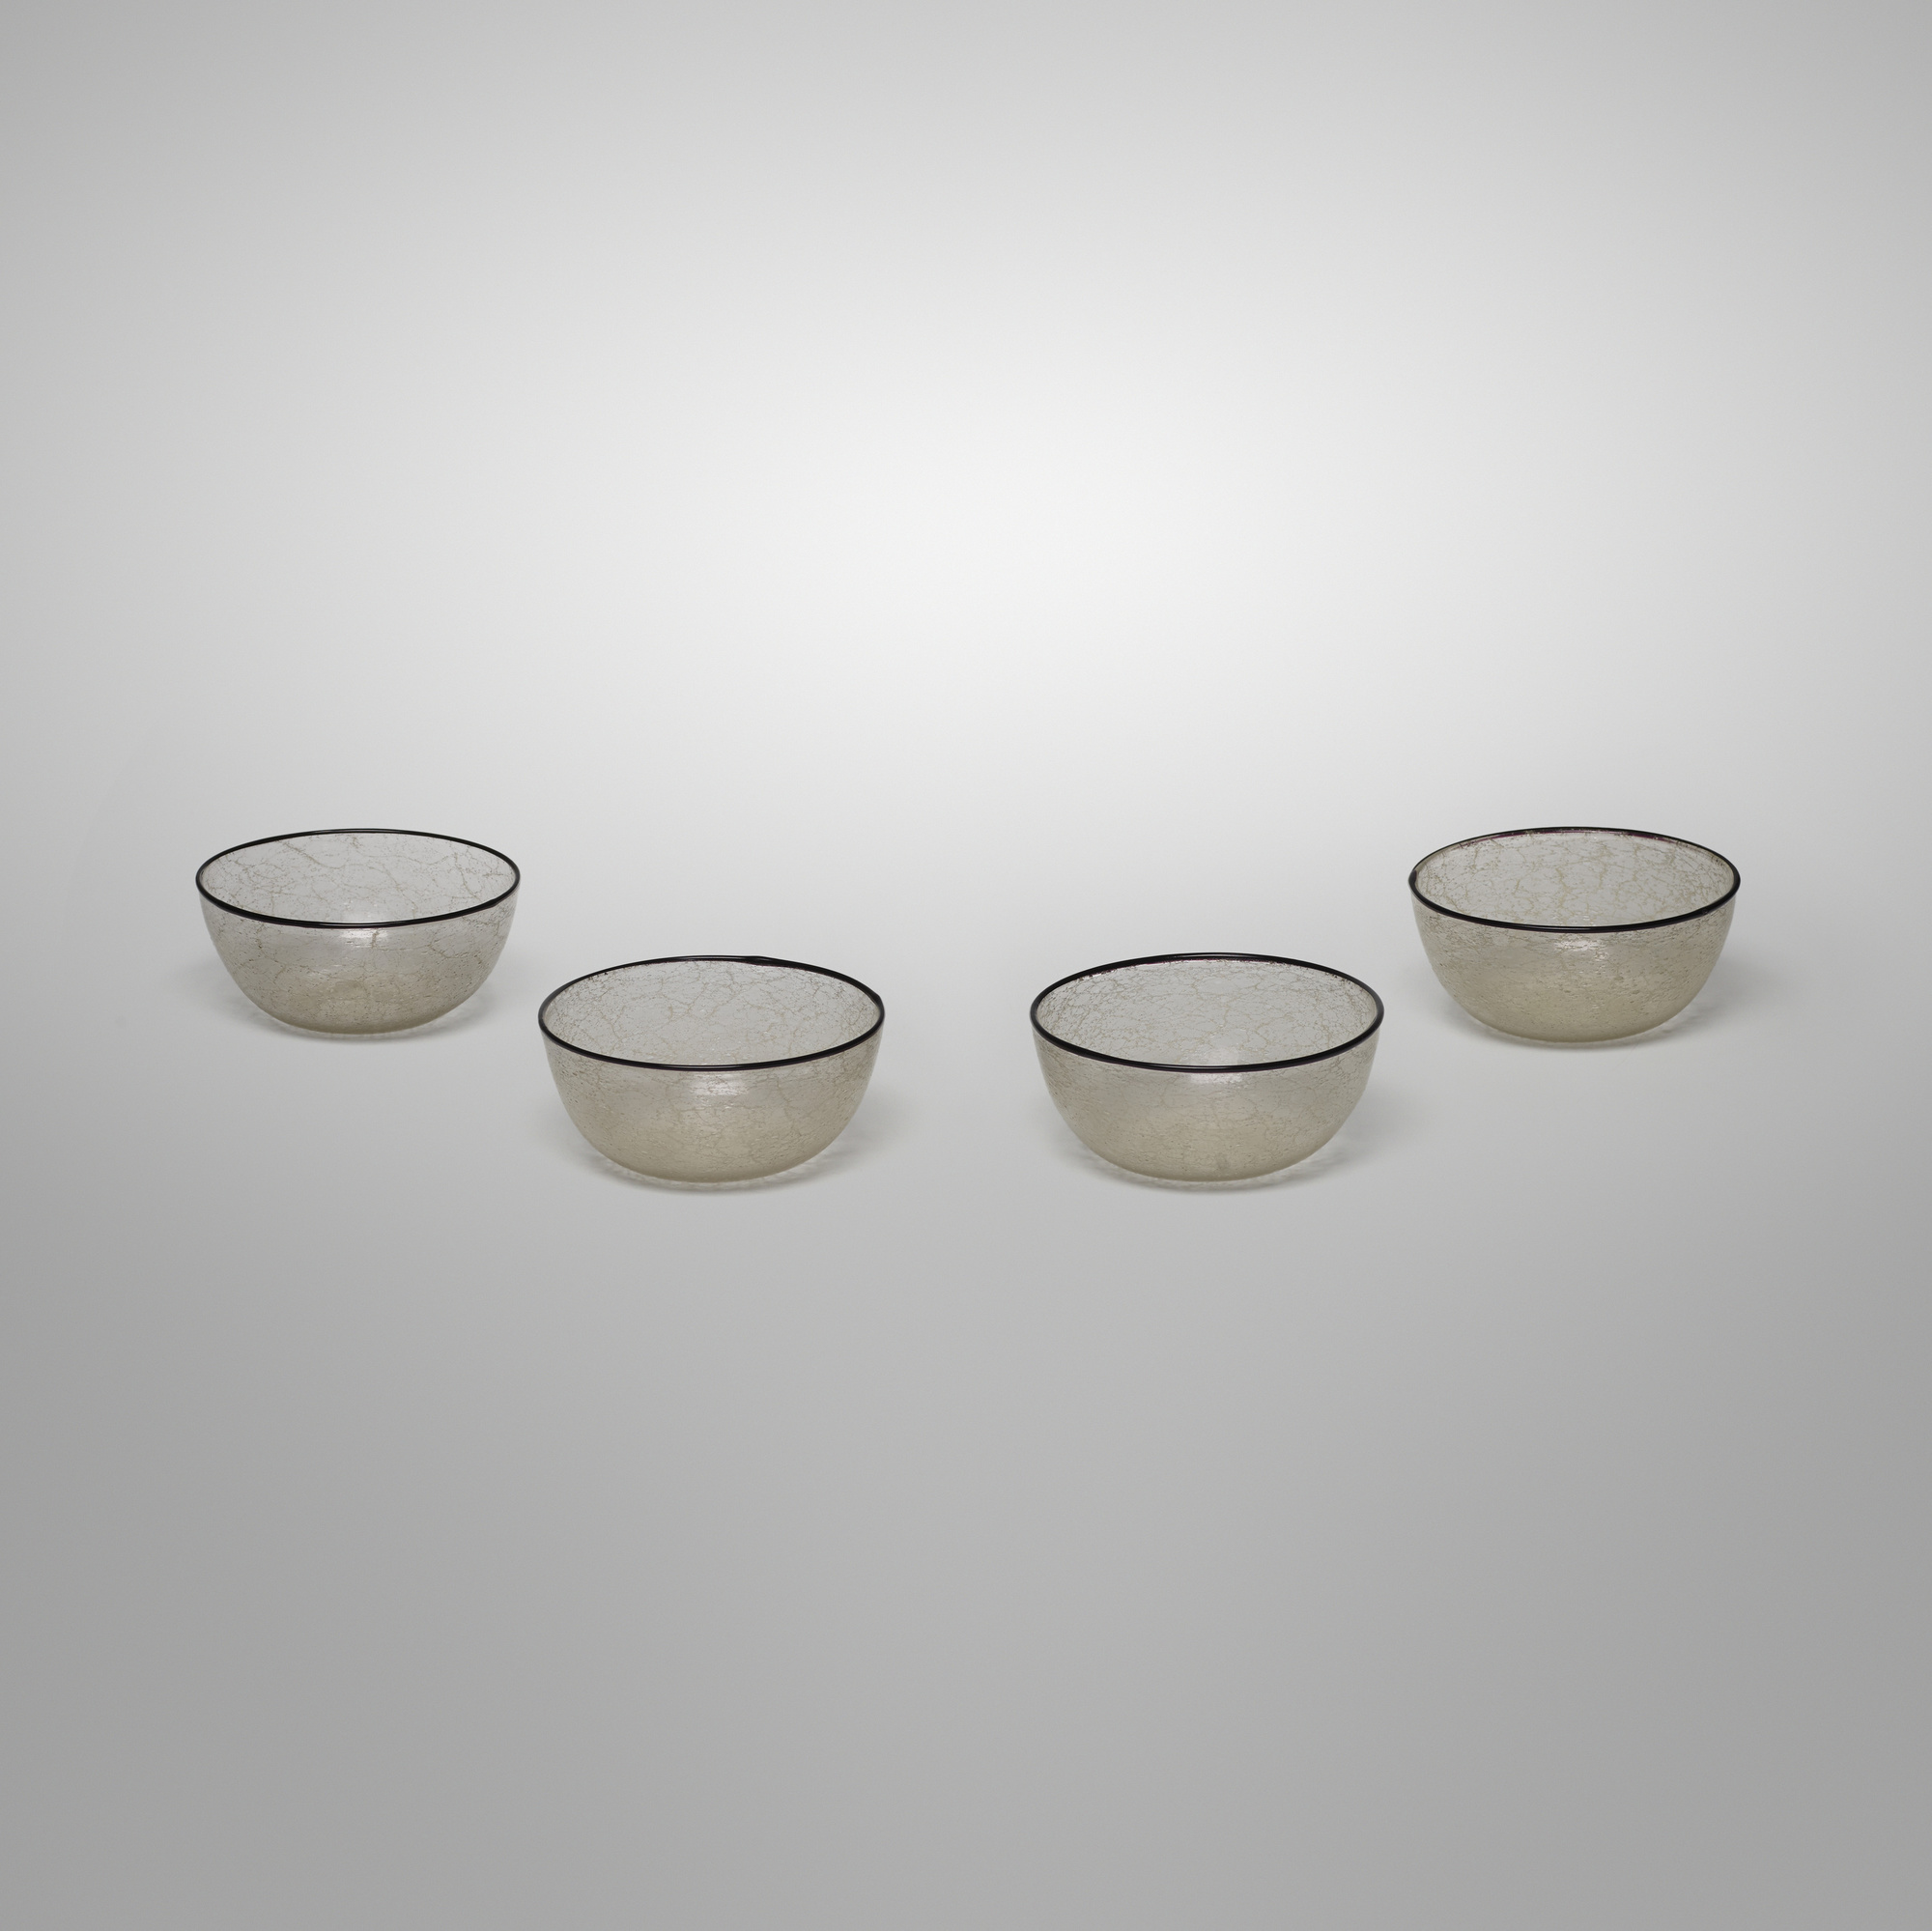 104: Ercole Barovier / Primavera bowls, set of four (1 of 2)